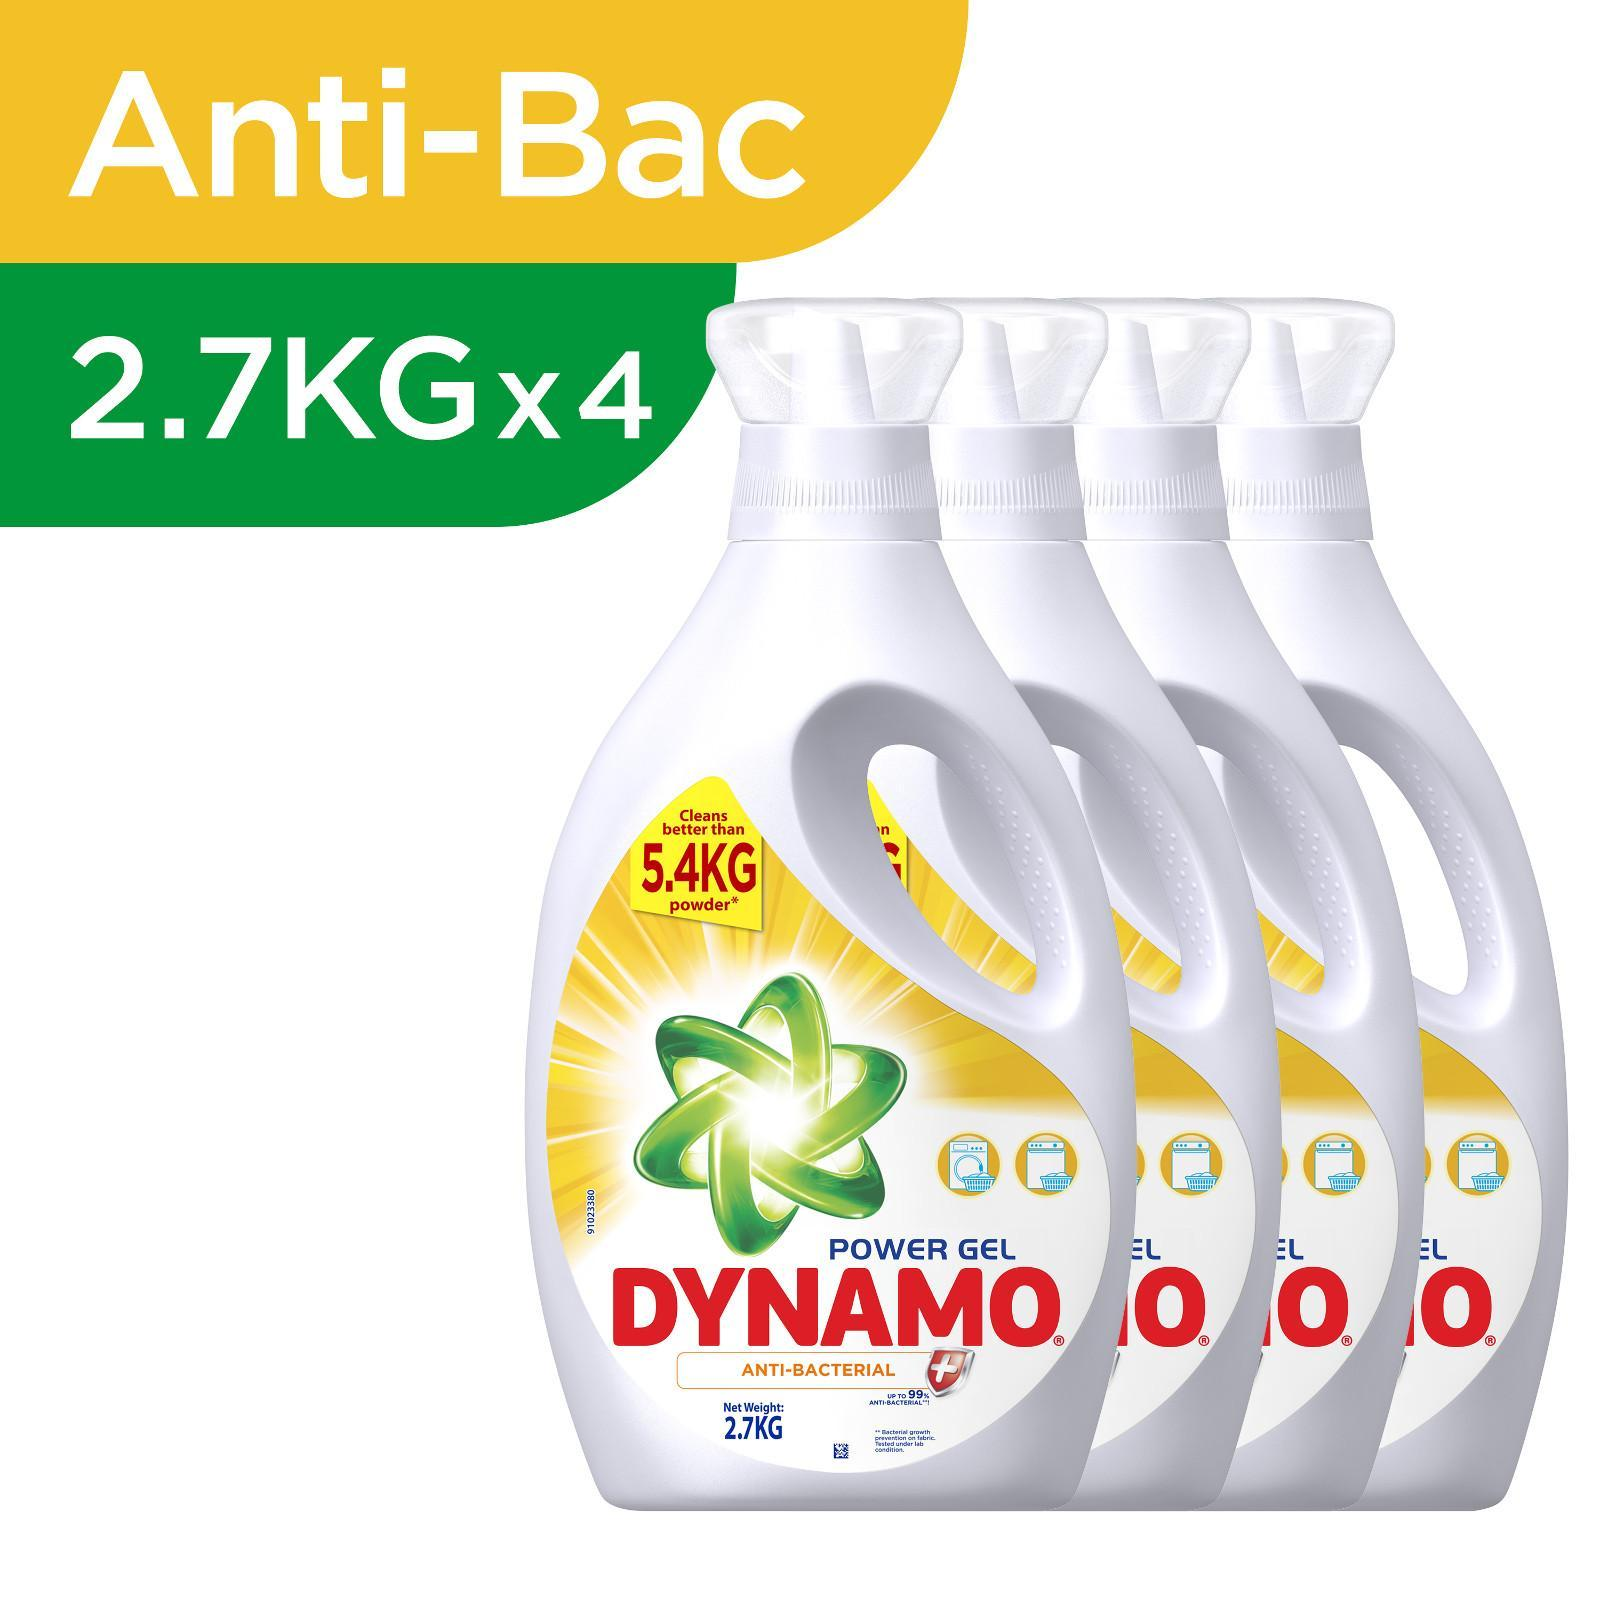 Dynamo Power Gel Anti-Bacterial Laundry Detergent - Case